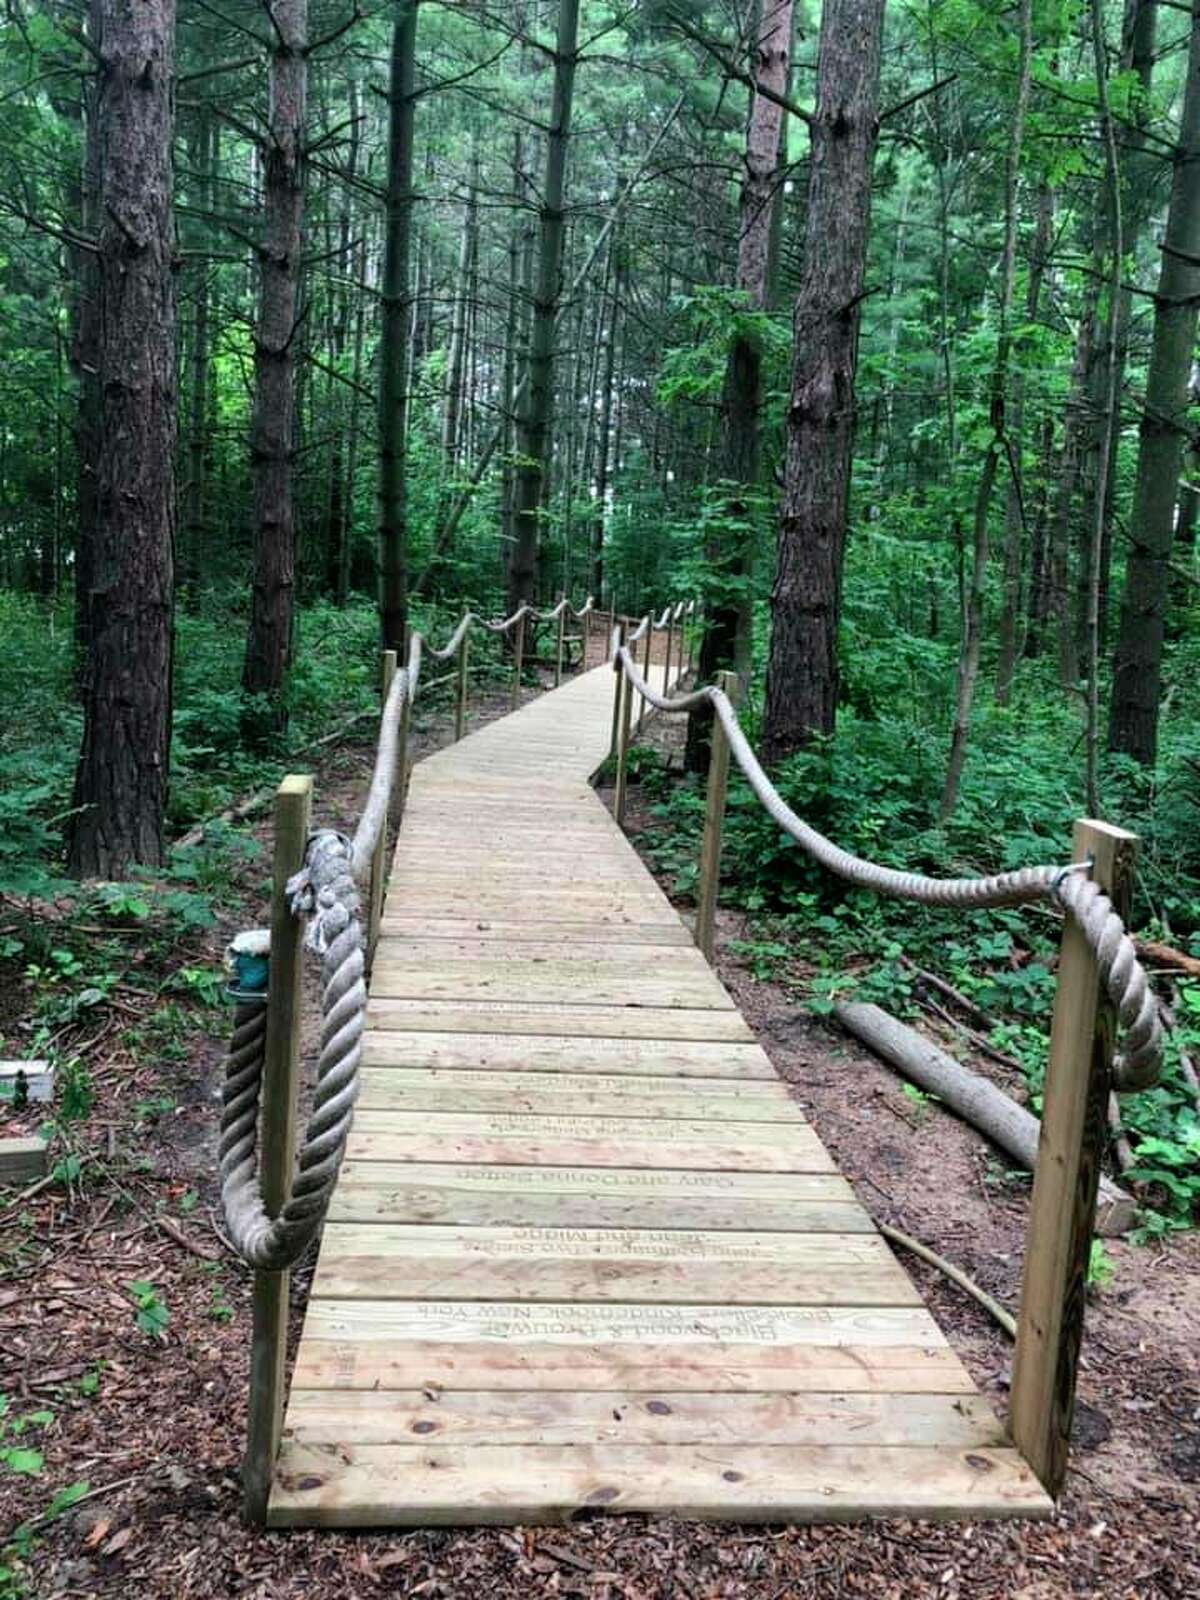 Sanilac County Historical Societywill hold ribbon cutting for nature trailSunday, Sept. 12. (Courtesy Photo)